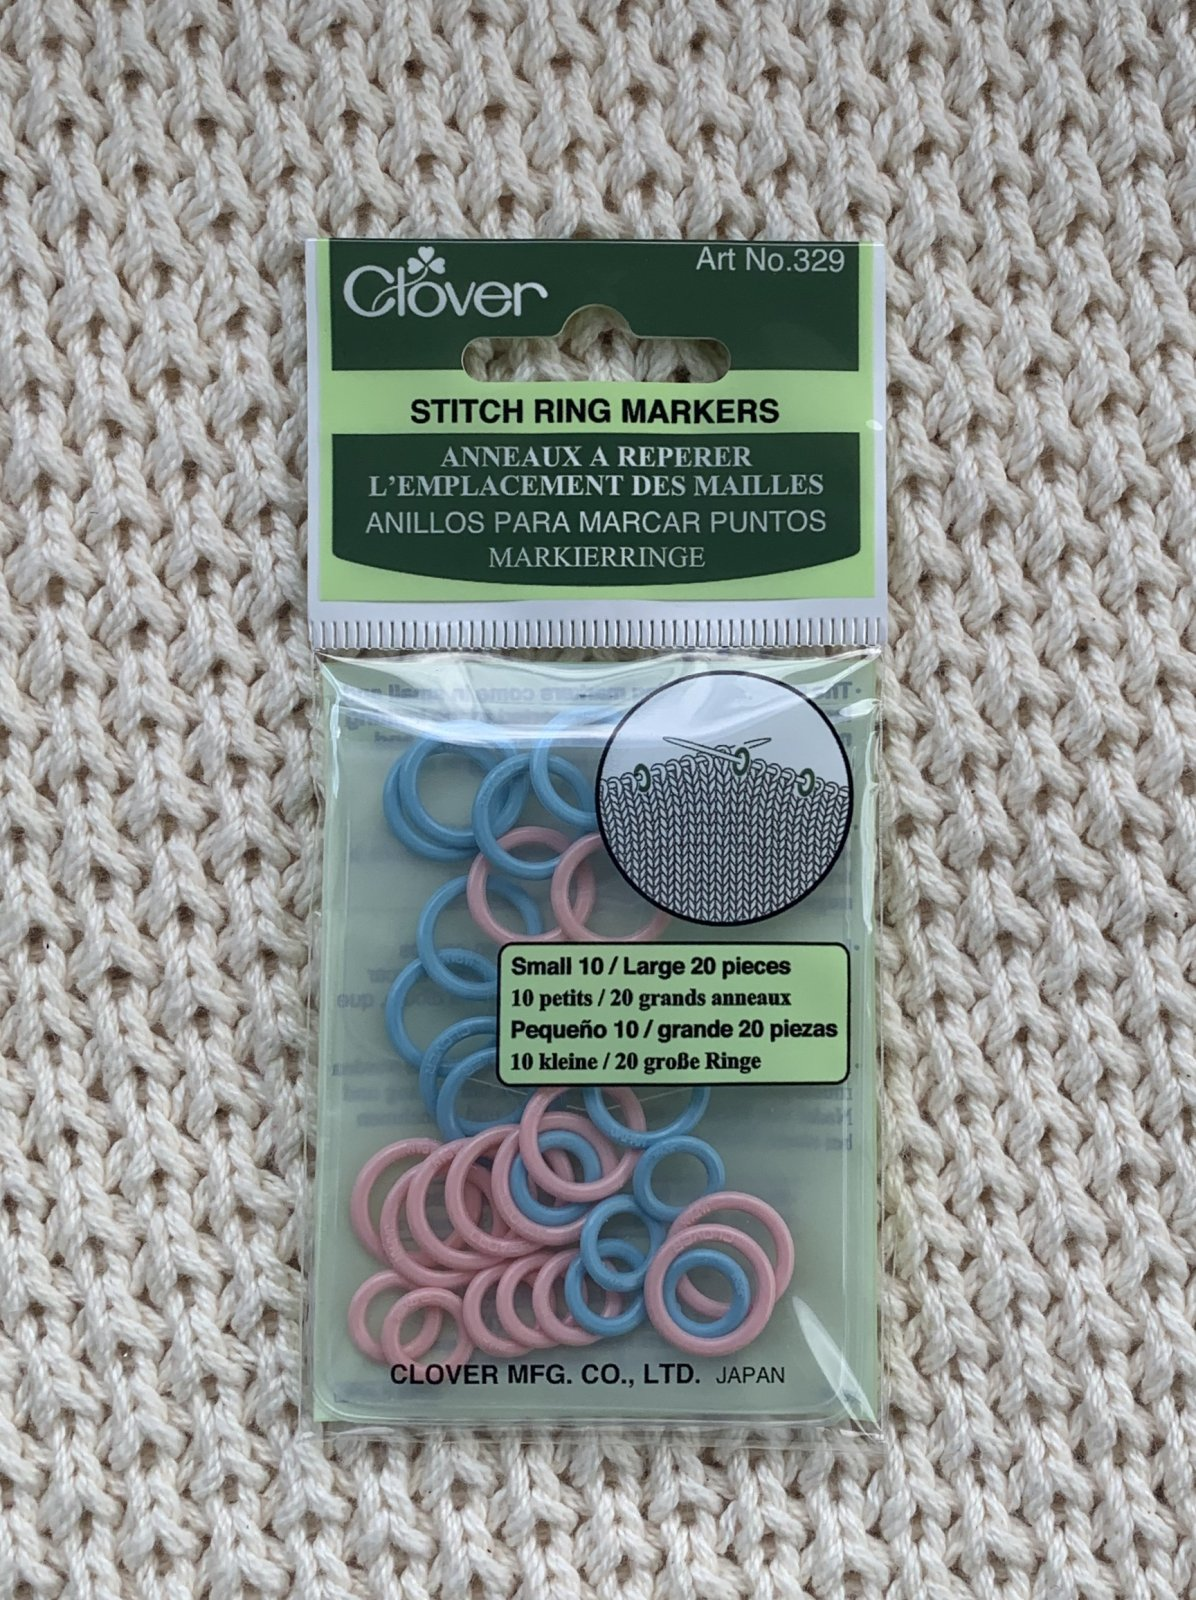 Clover Stitch Marker Rings 329